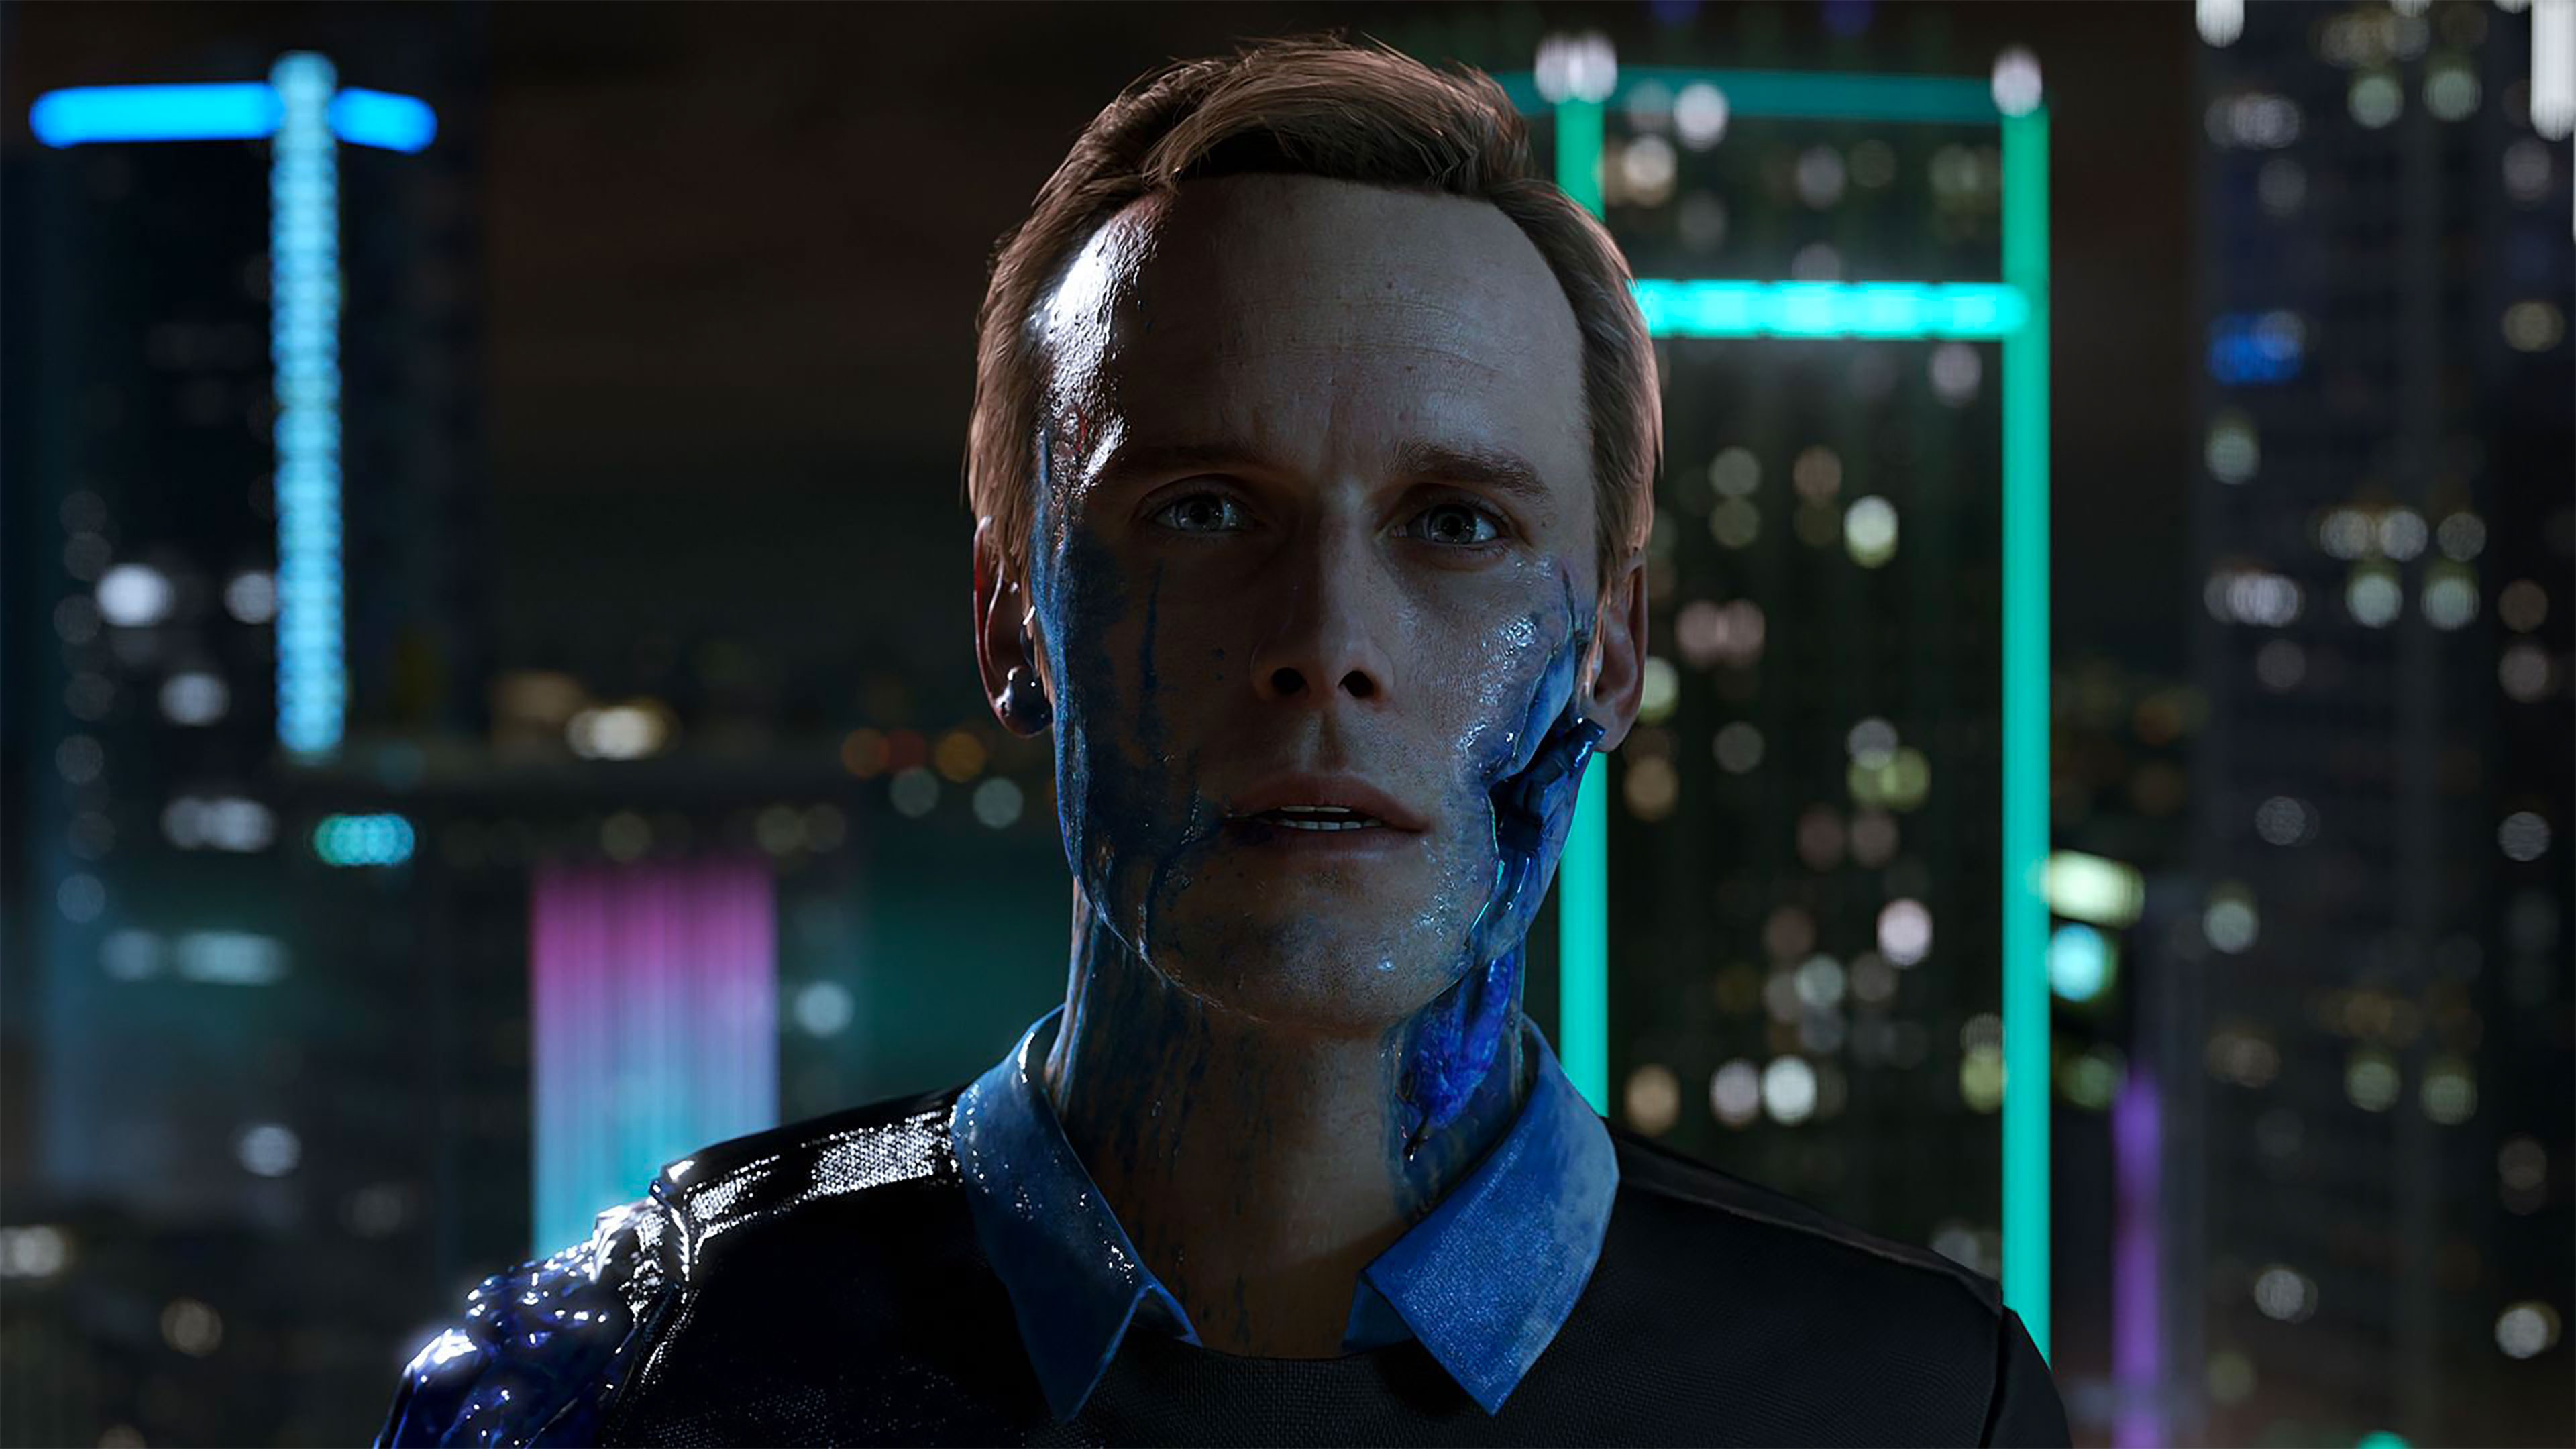 detroit become human game hd wallpaper 69959